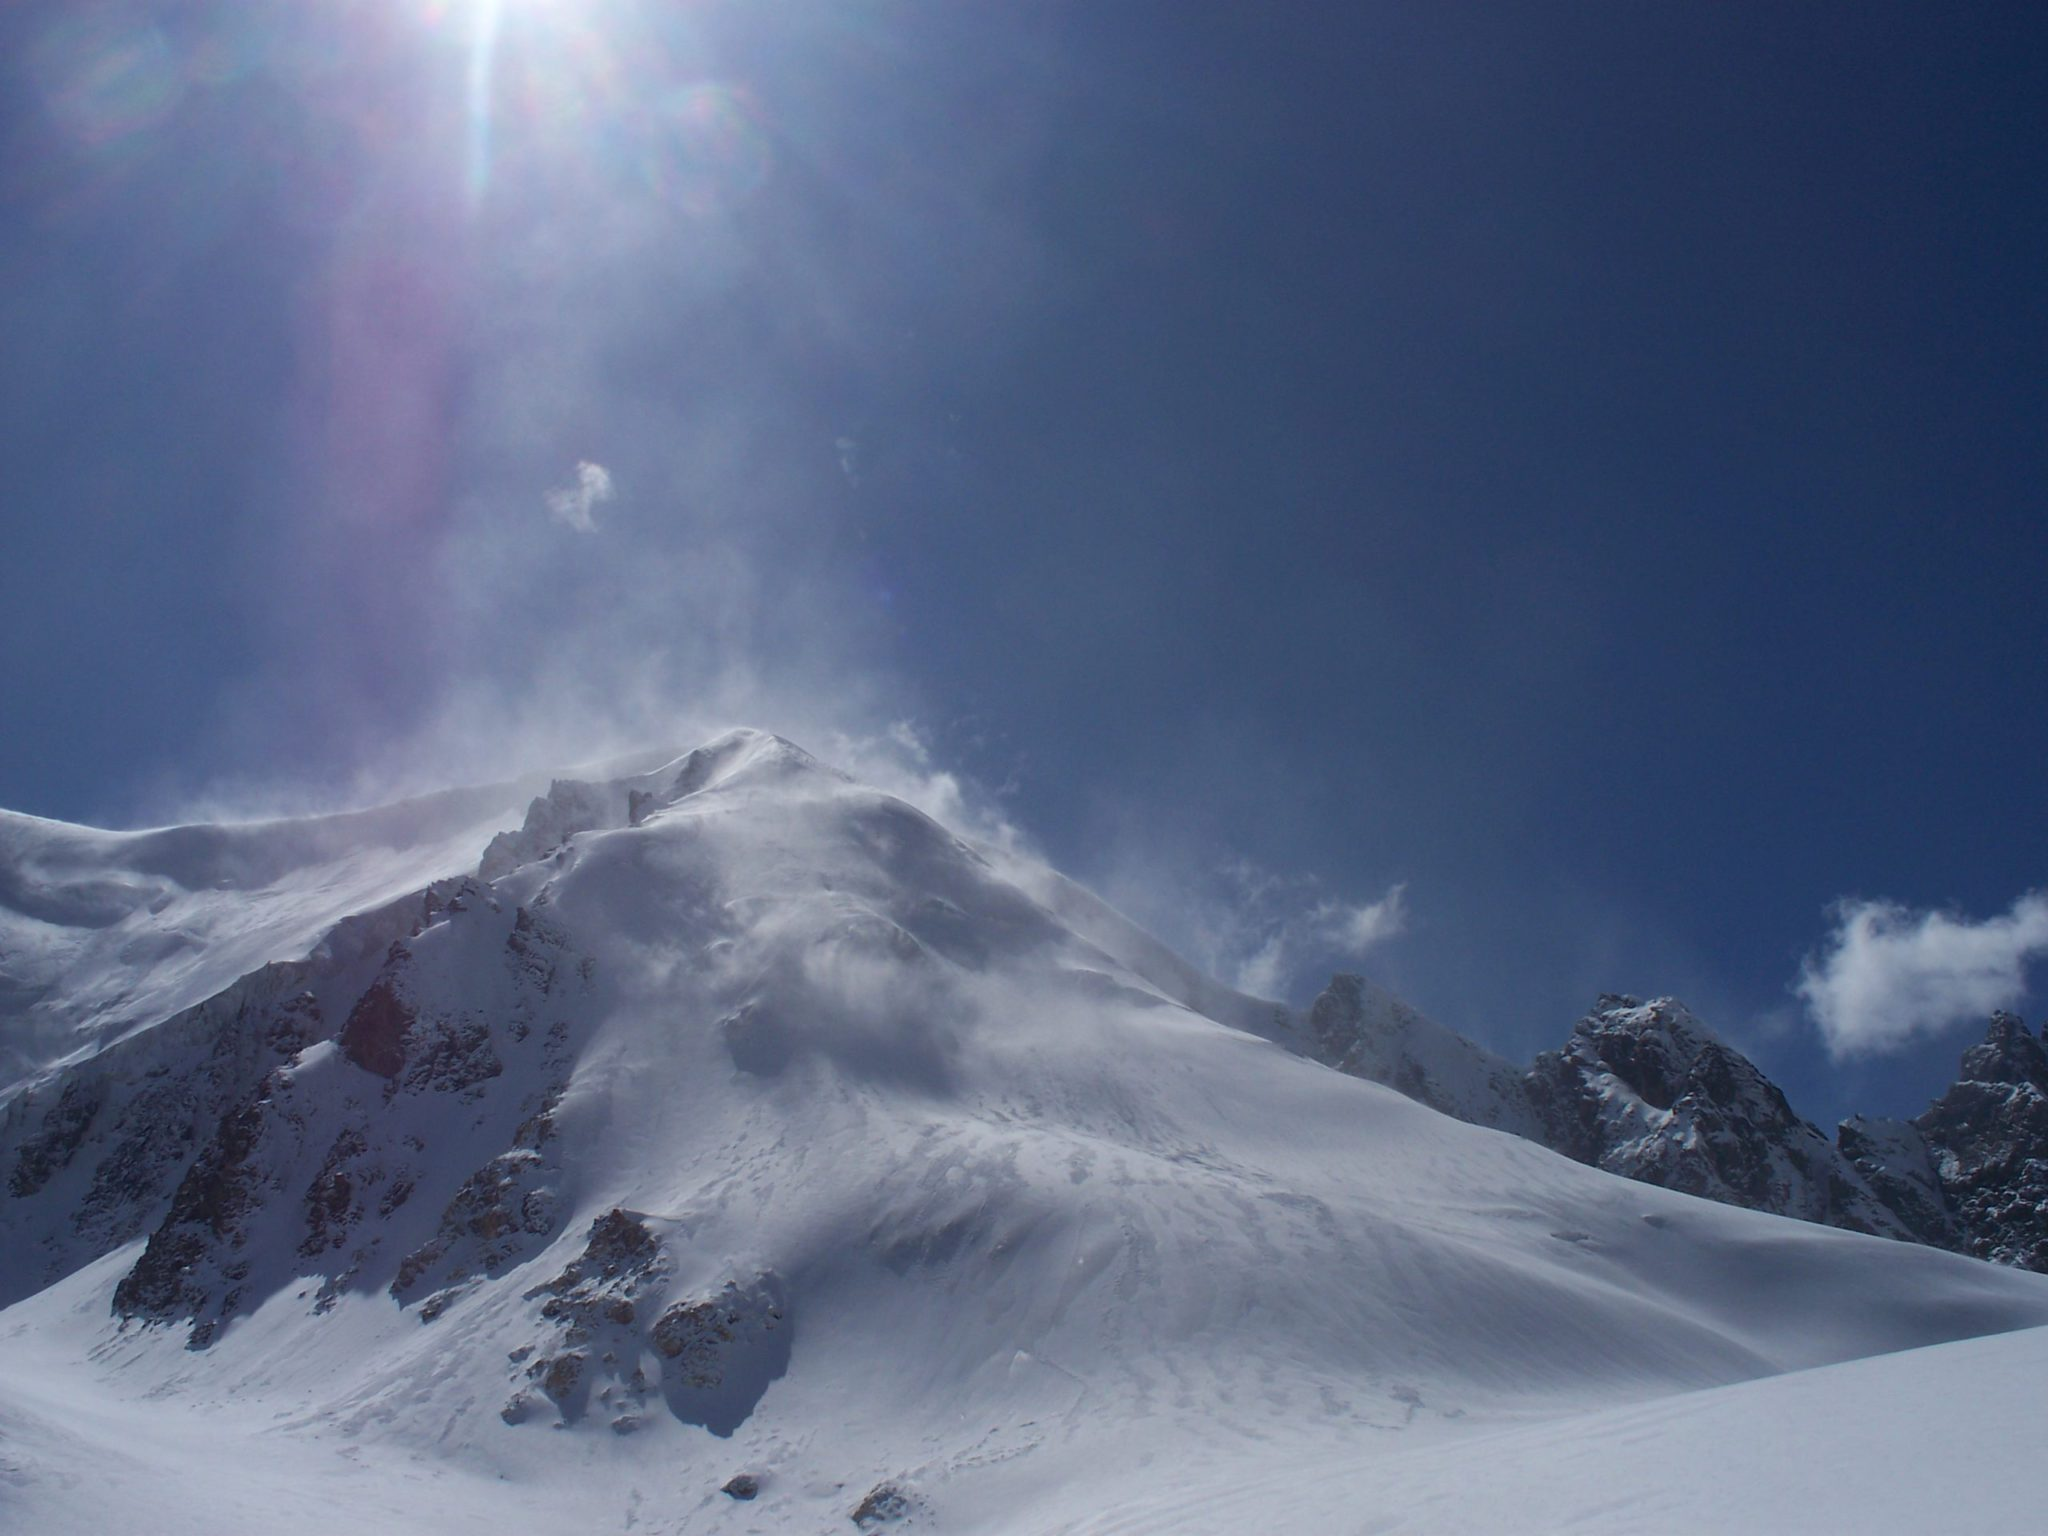 First ascents Kyrgyzstan expedition: Mountaineering Kuiluu Range